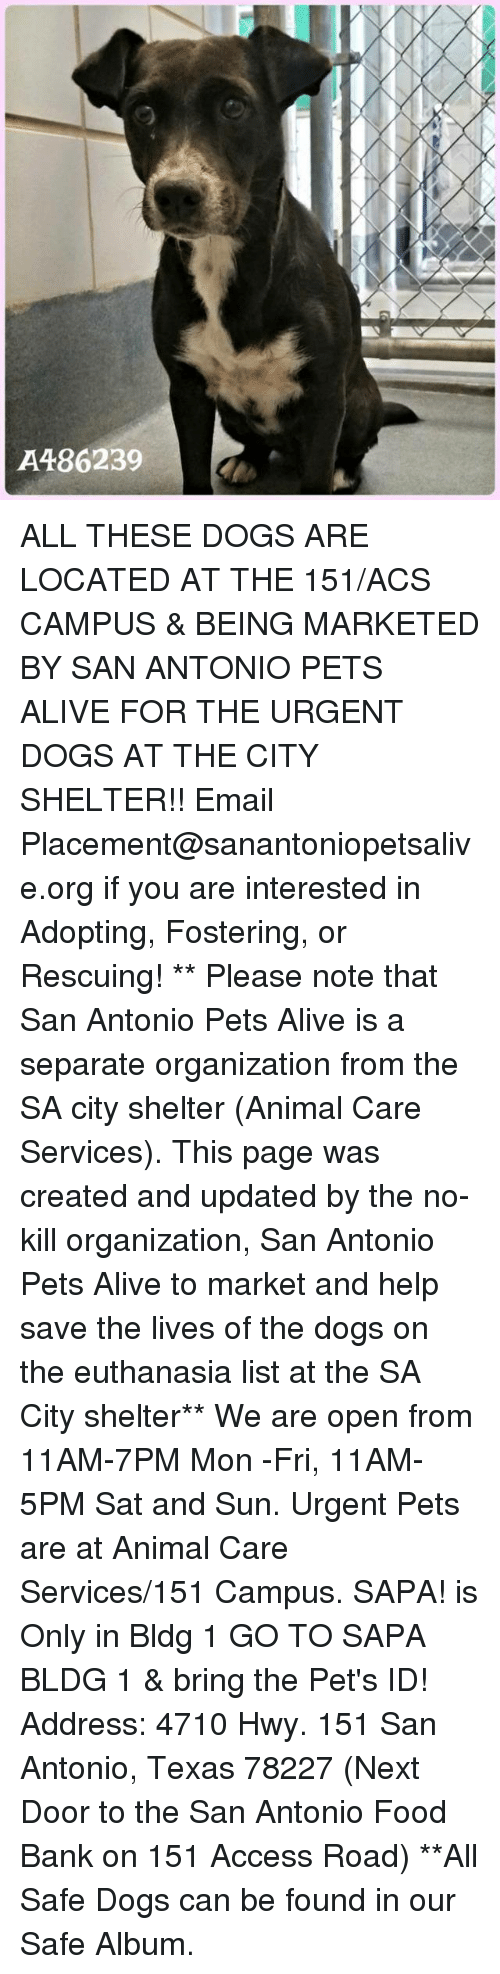 Alive, Dogs, and Food: A486239 ALL THESE DOGS ARE LOCATED AT THE 151/ACS CAMPUS & BEING MARKETED BY SAN ANTONIO PETS ALIVE FOR THE URGENT DOGS AT THE CITY SHELTER!!  Email Placement@sanantoniopetsalive.org if you are interested in Adopting, Fostering, or Rescuing!                                                                                                                                                                                                                                                                                                                                                             ** Please note that San Antonio Pets Alive is a separate organization from the SA city shelter (Animal Care Services). This page was created and updated by the no-kill organization, San Antonio Pets Alive to market and help save the lives of the dogs on the euthanasia list at the SA City shelter**  We are open from 11AM-7PM Mon -Fri, 11AM-5PM Sat and Sun. Urgent Pets are at Animal Care Services/151 Campus. SAPA! is Only in Bldg 1 GO TO SAPA BLDG 1 & bring the Pet's ID! Address: 4710 Hwy. 151 San Antonio, Texas 78227 (Next Door to the San Antonio Food Bank on 151 Access Road) **All Safe Dogs can be found in our Safe Album.